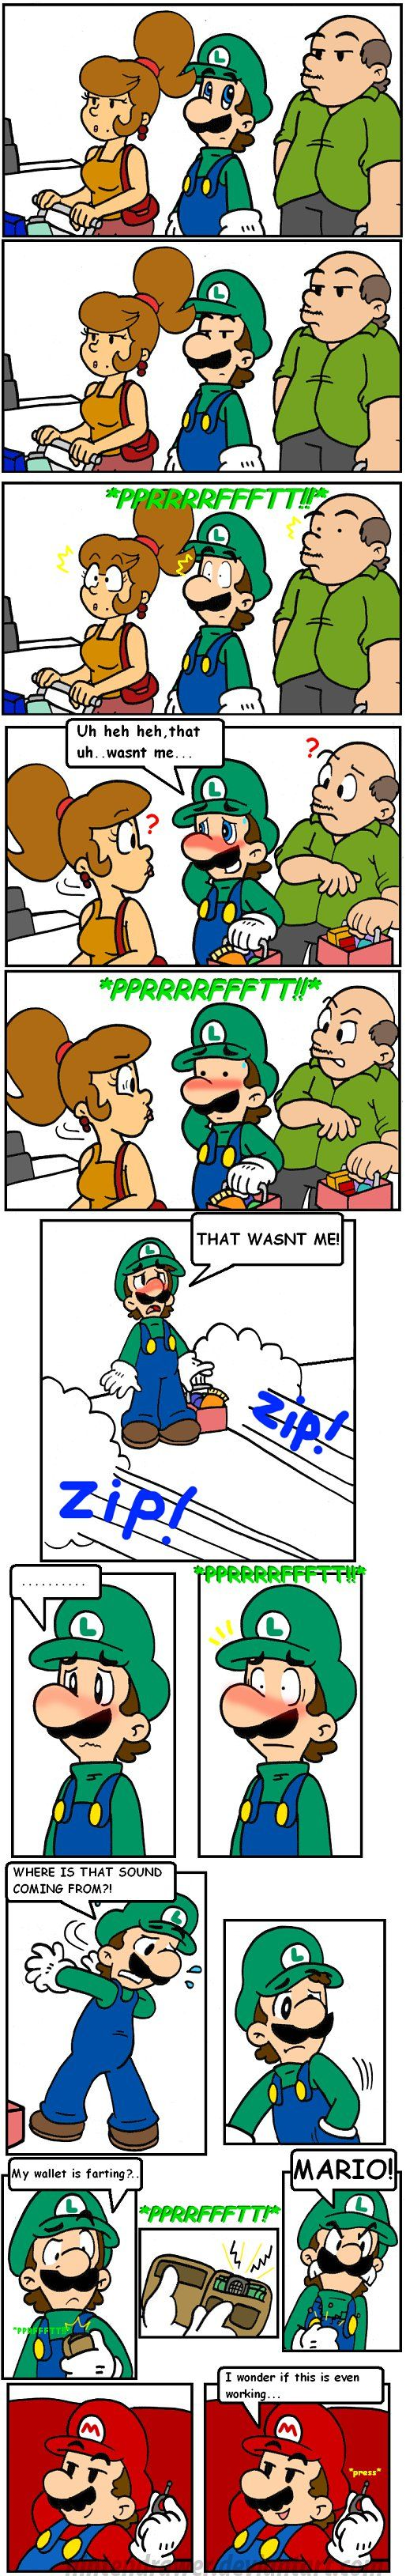 pranksters 4 by Nintendrawer on DeviantArt I love Luigi's face on the last panel with him in it XD